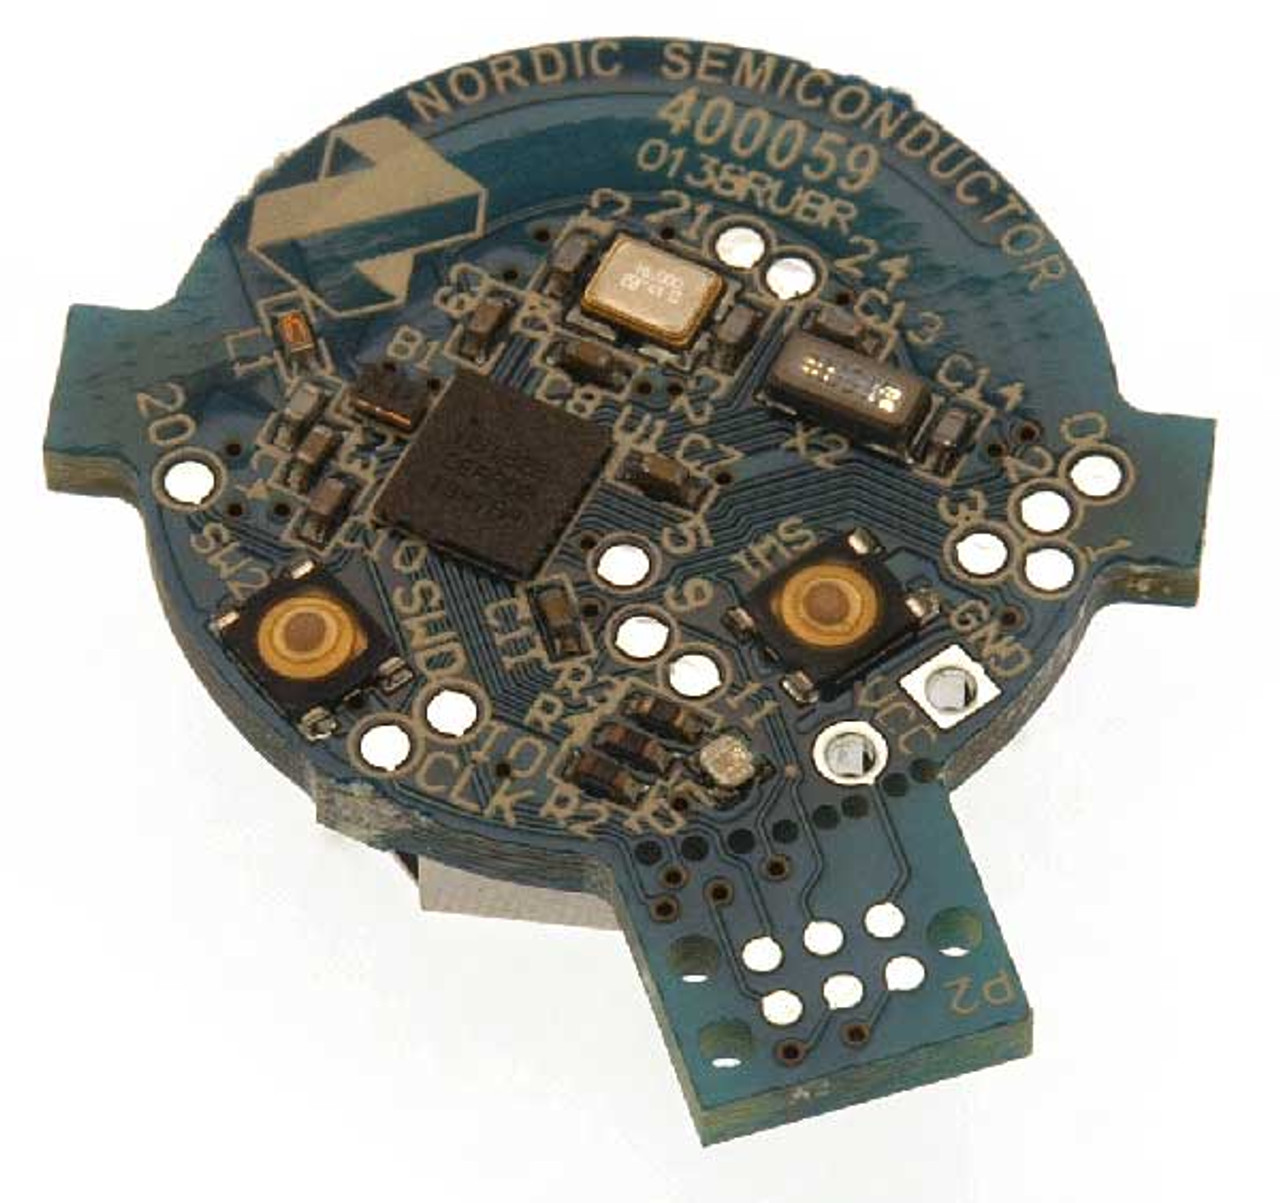 NRF51822-BEACON - Demo/Dev Kit for Bluetooth Smart Beacons